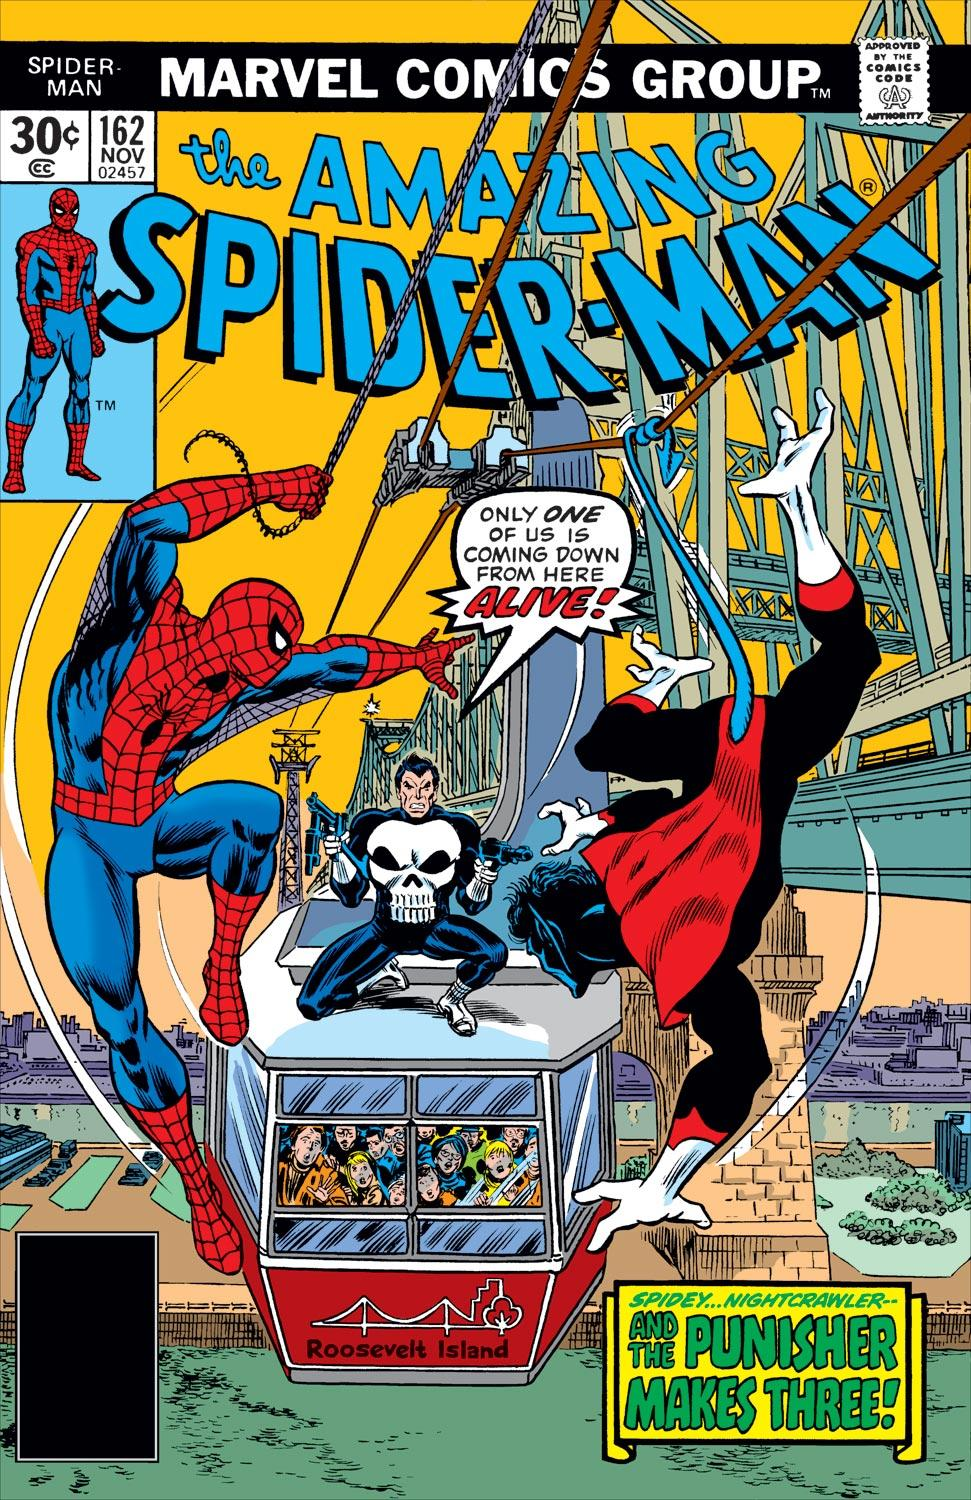 The Amazing Spider-Man (1963) #162